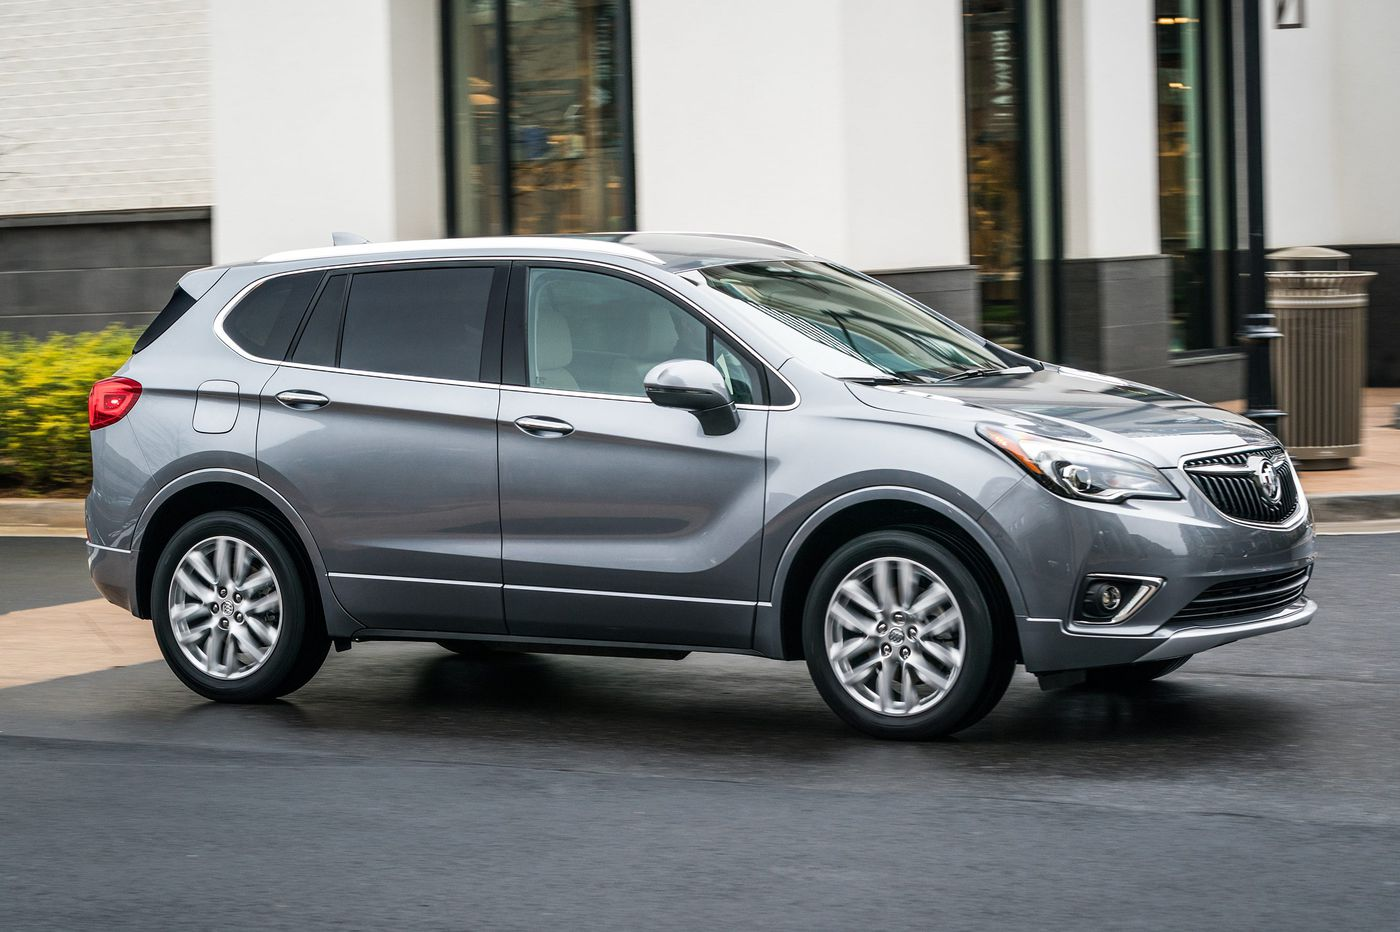 Refreshed for 2019, Buick Envision is roomy, comfortable, and quiet